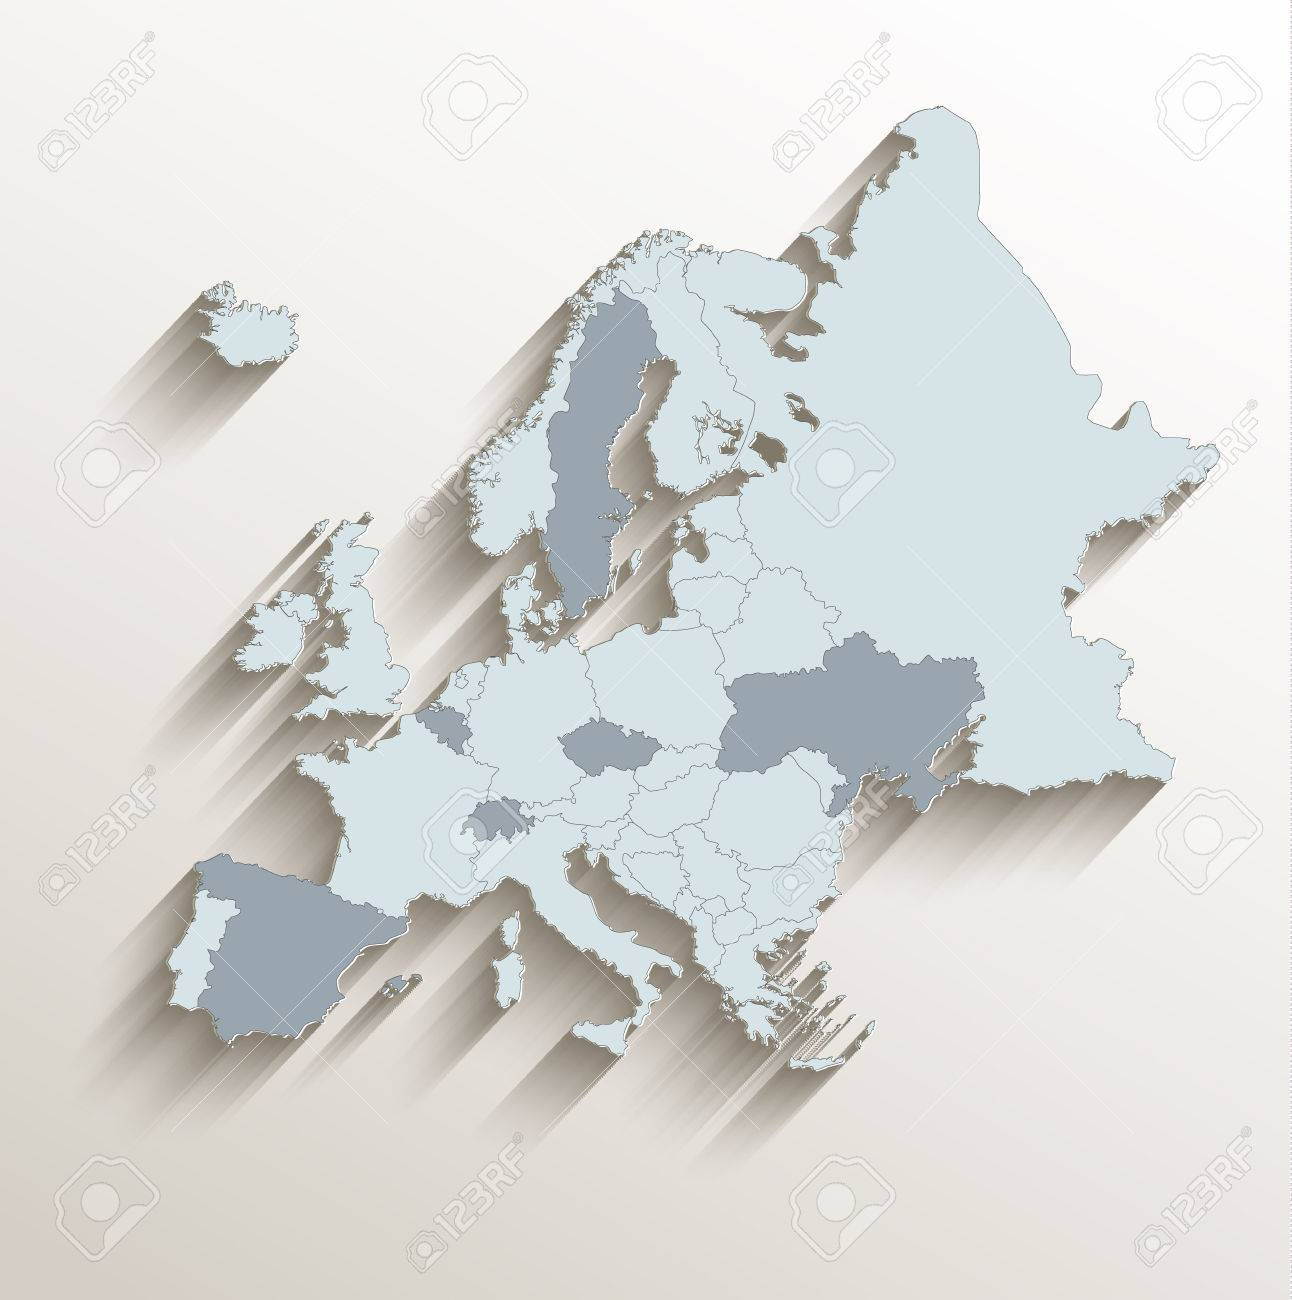 Europe political map white blue 3d vector royalty free cliparts europe political map white blue 3d vector stock vector 62635728 gumiabroncs Images